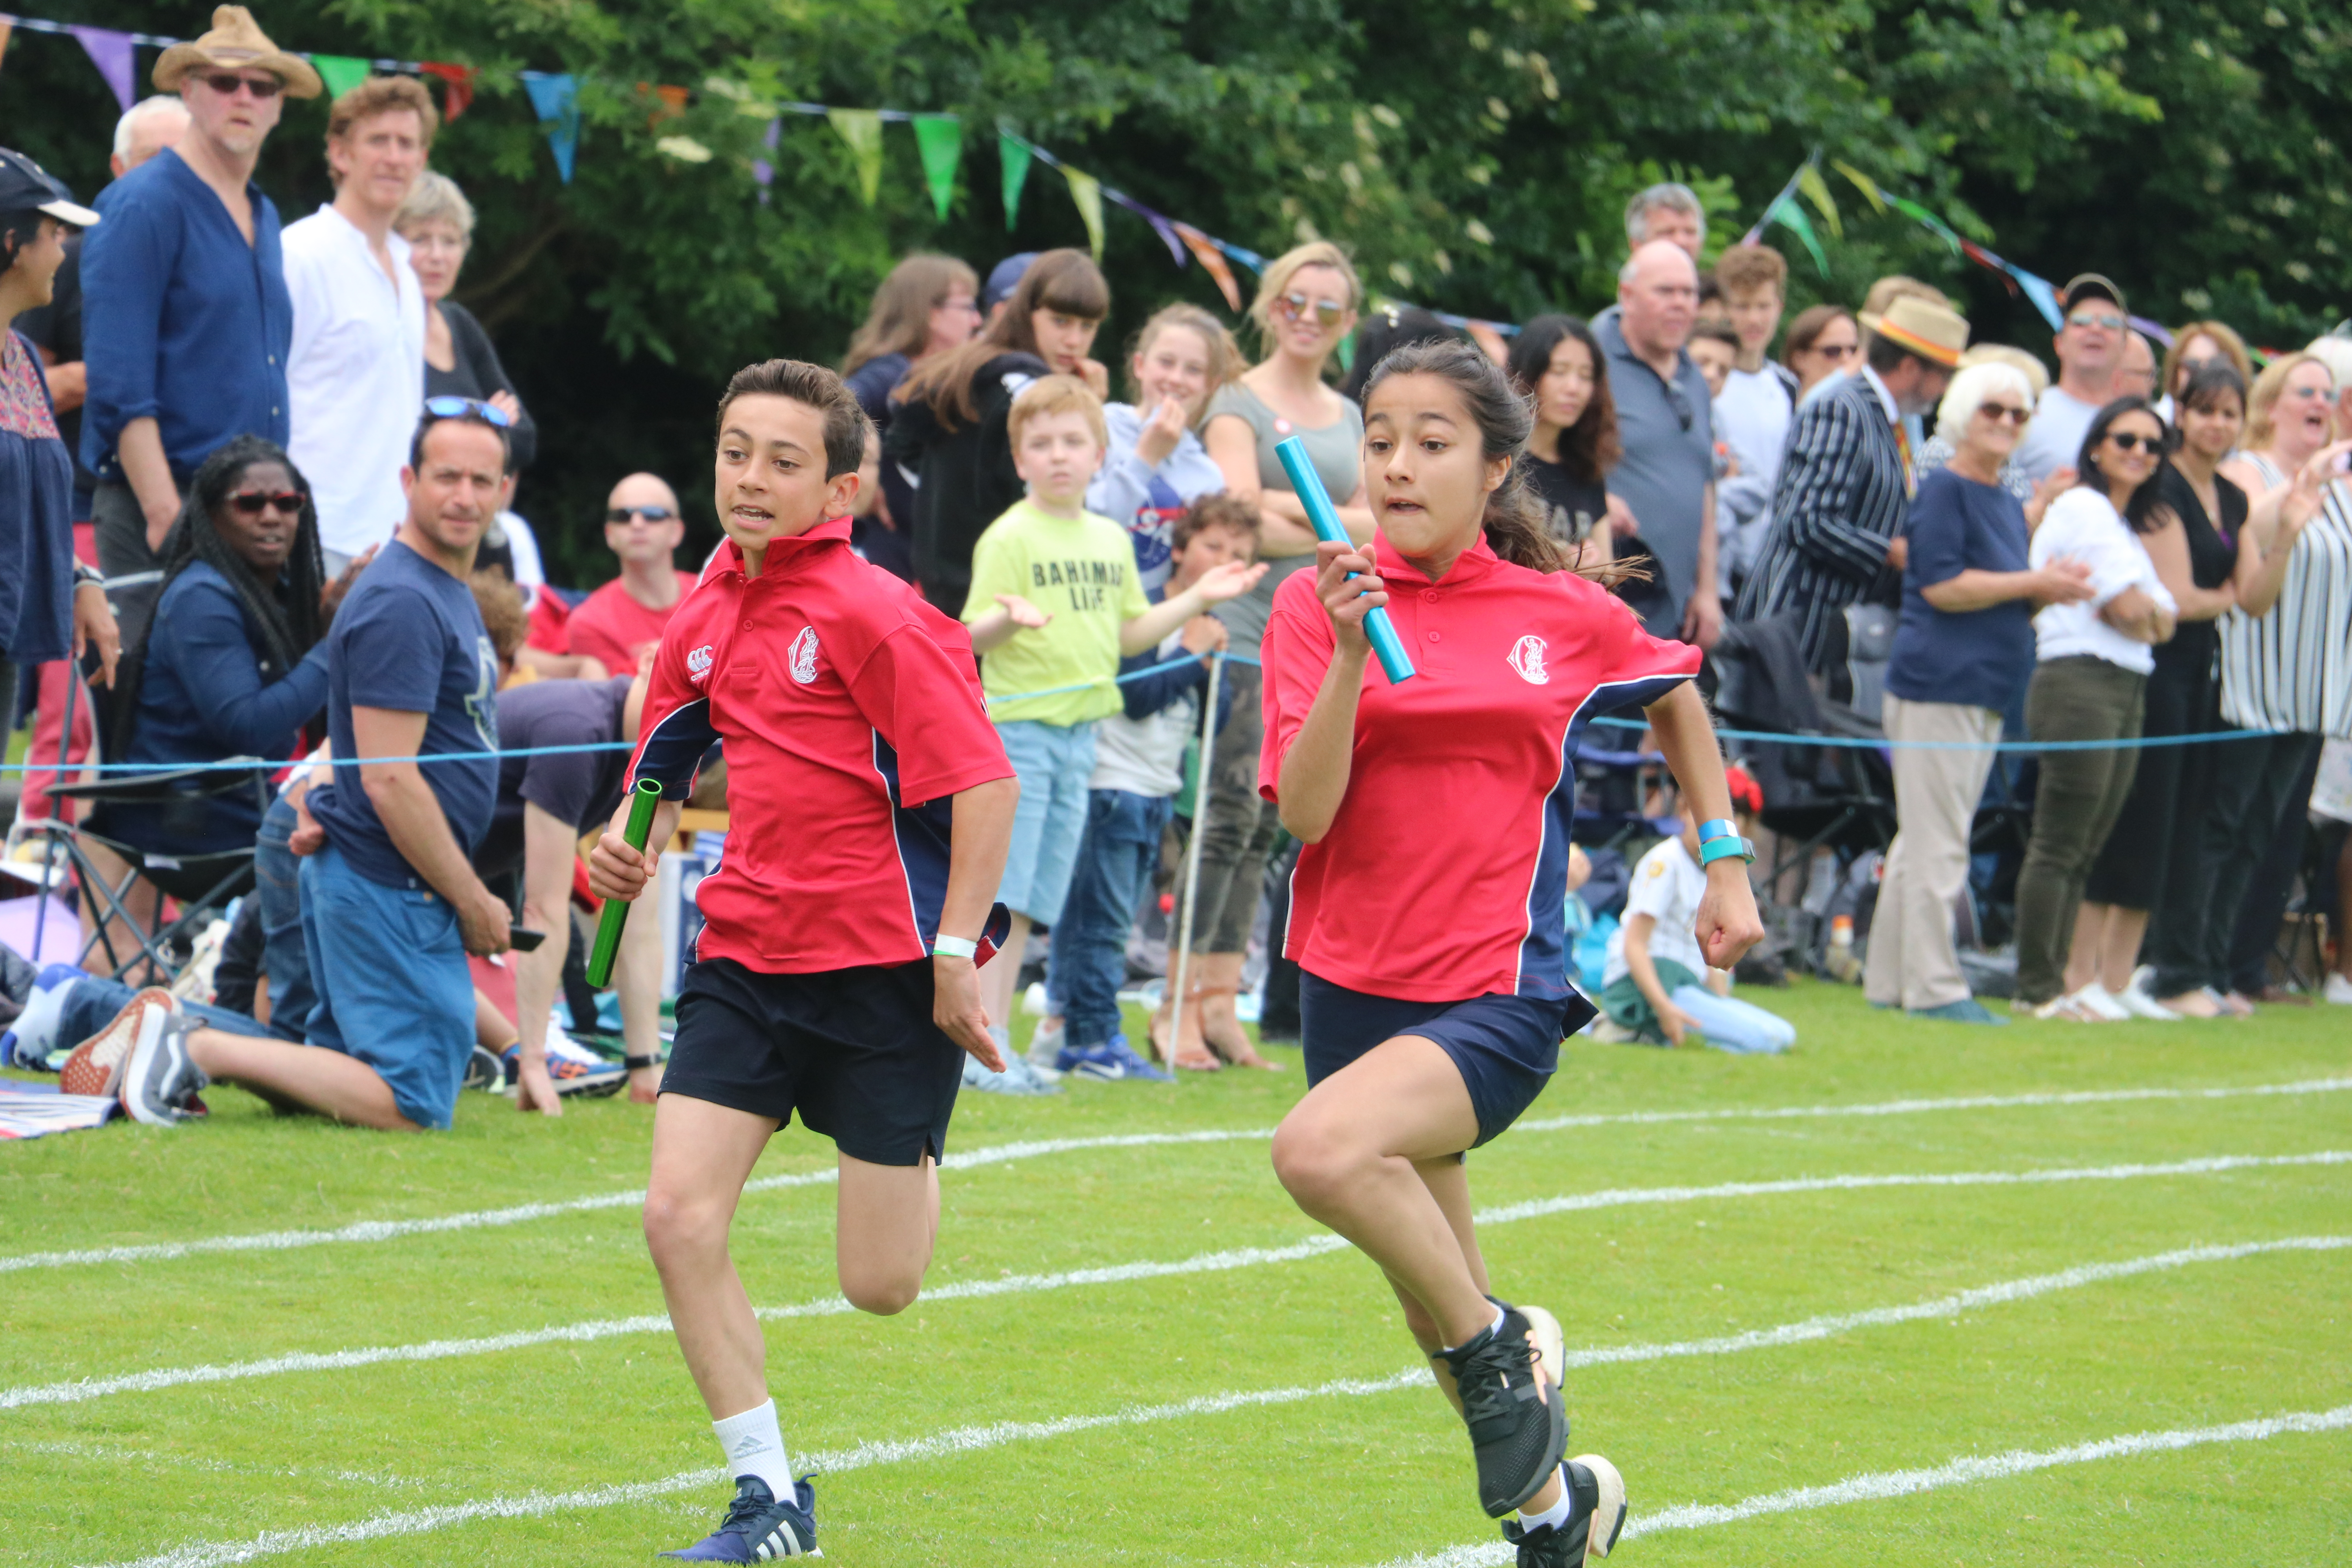 The fiercely contested House Relay at Sports Day